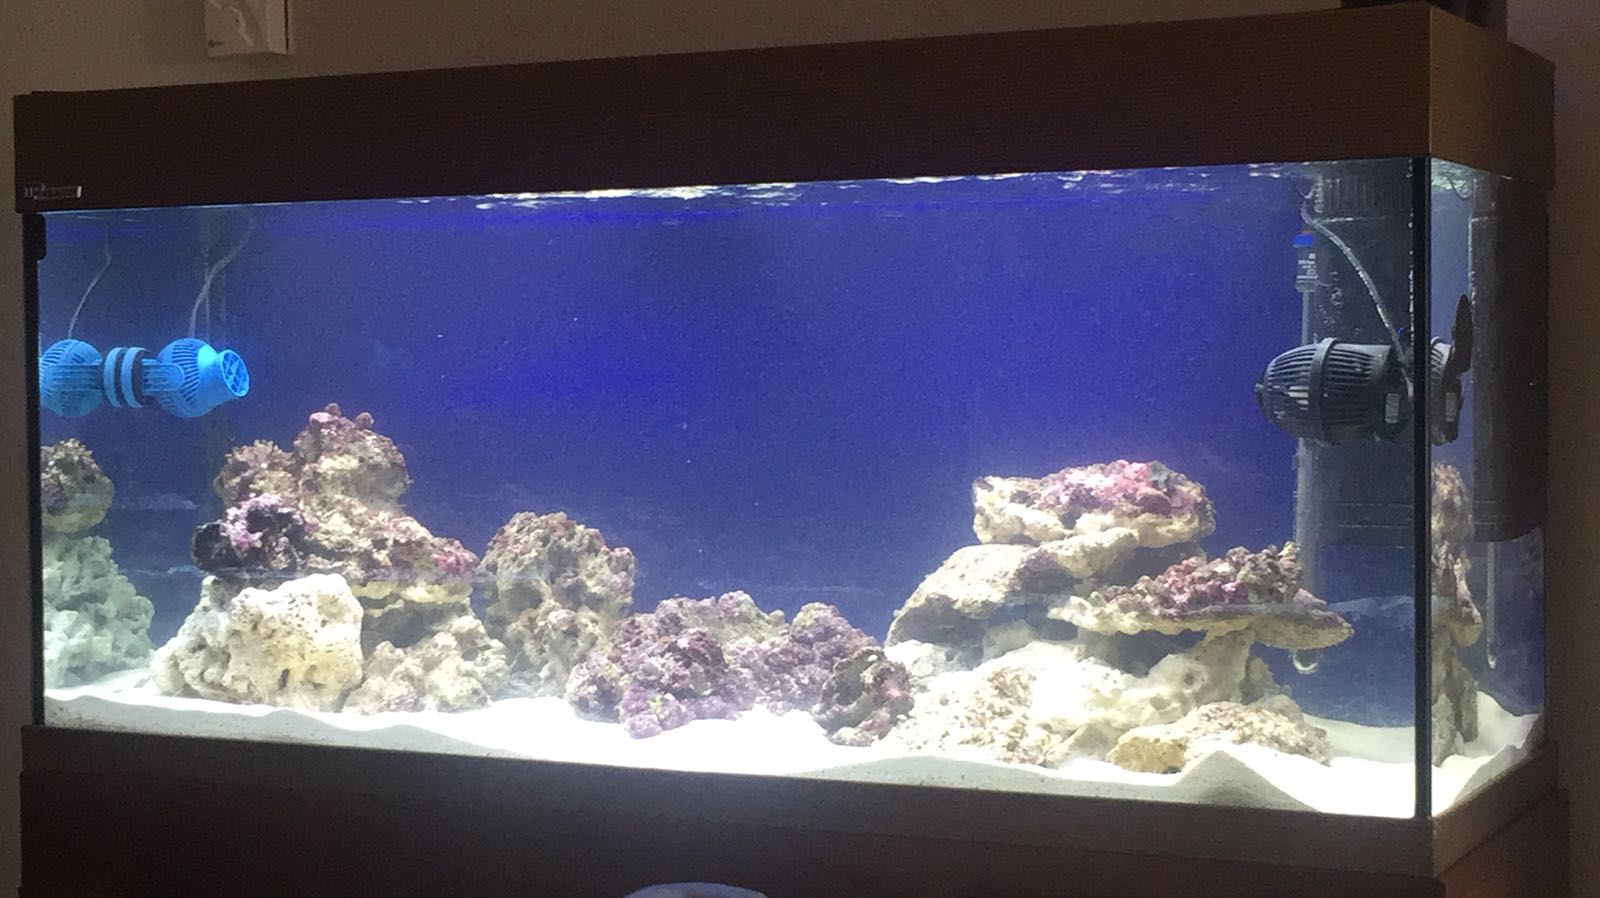 WhatsApp Image 2018-03-06 at 16.37.47.jpeg